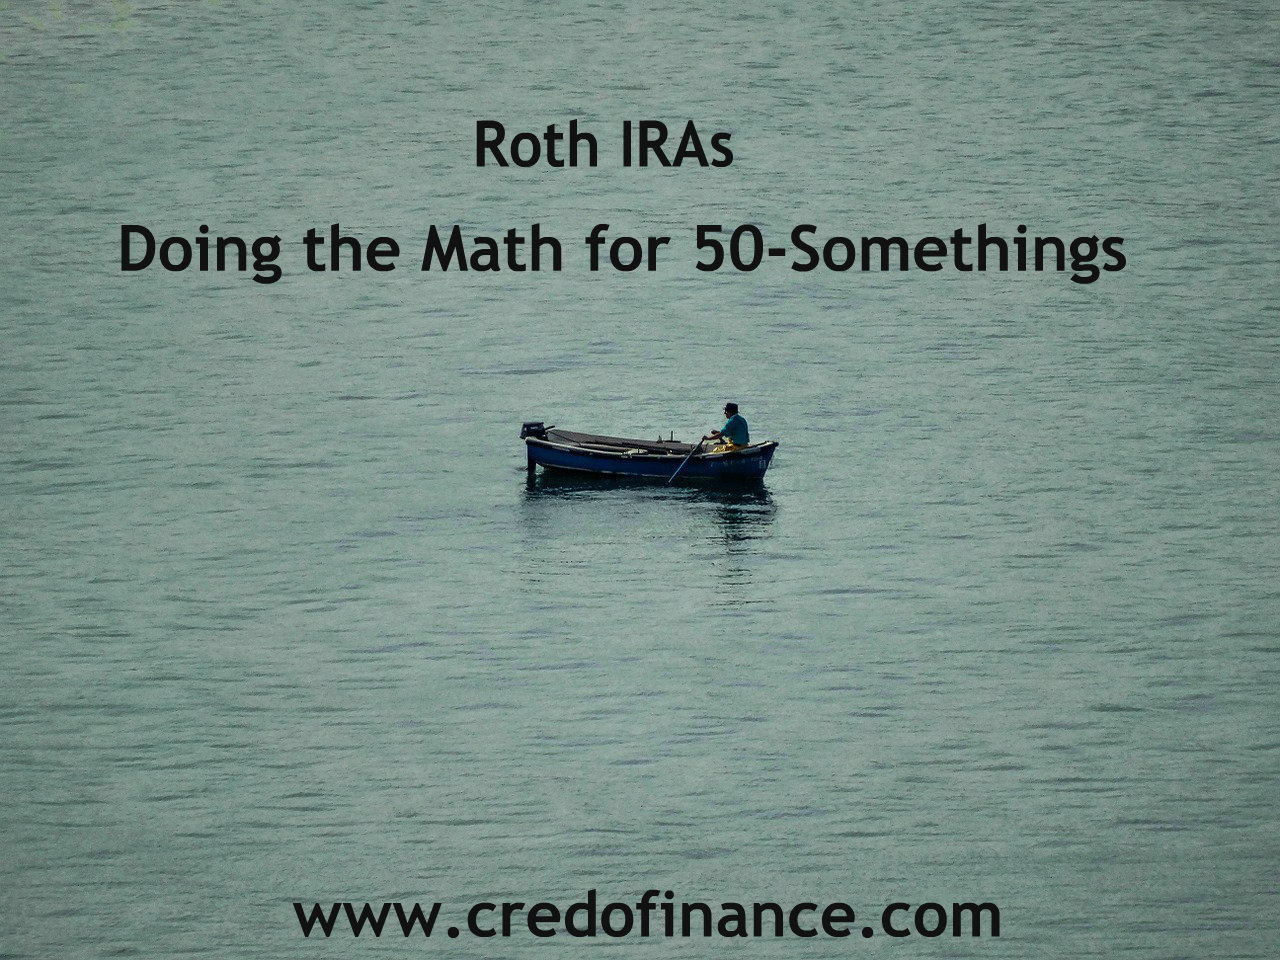 Roth IRA - Credo Finance